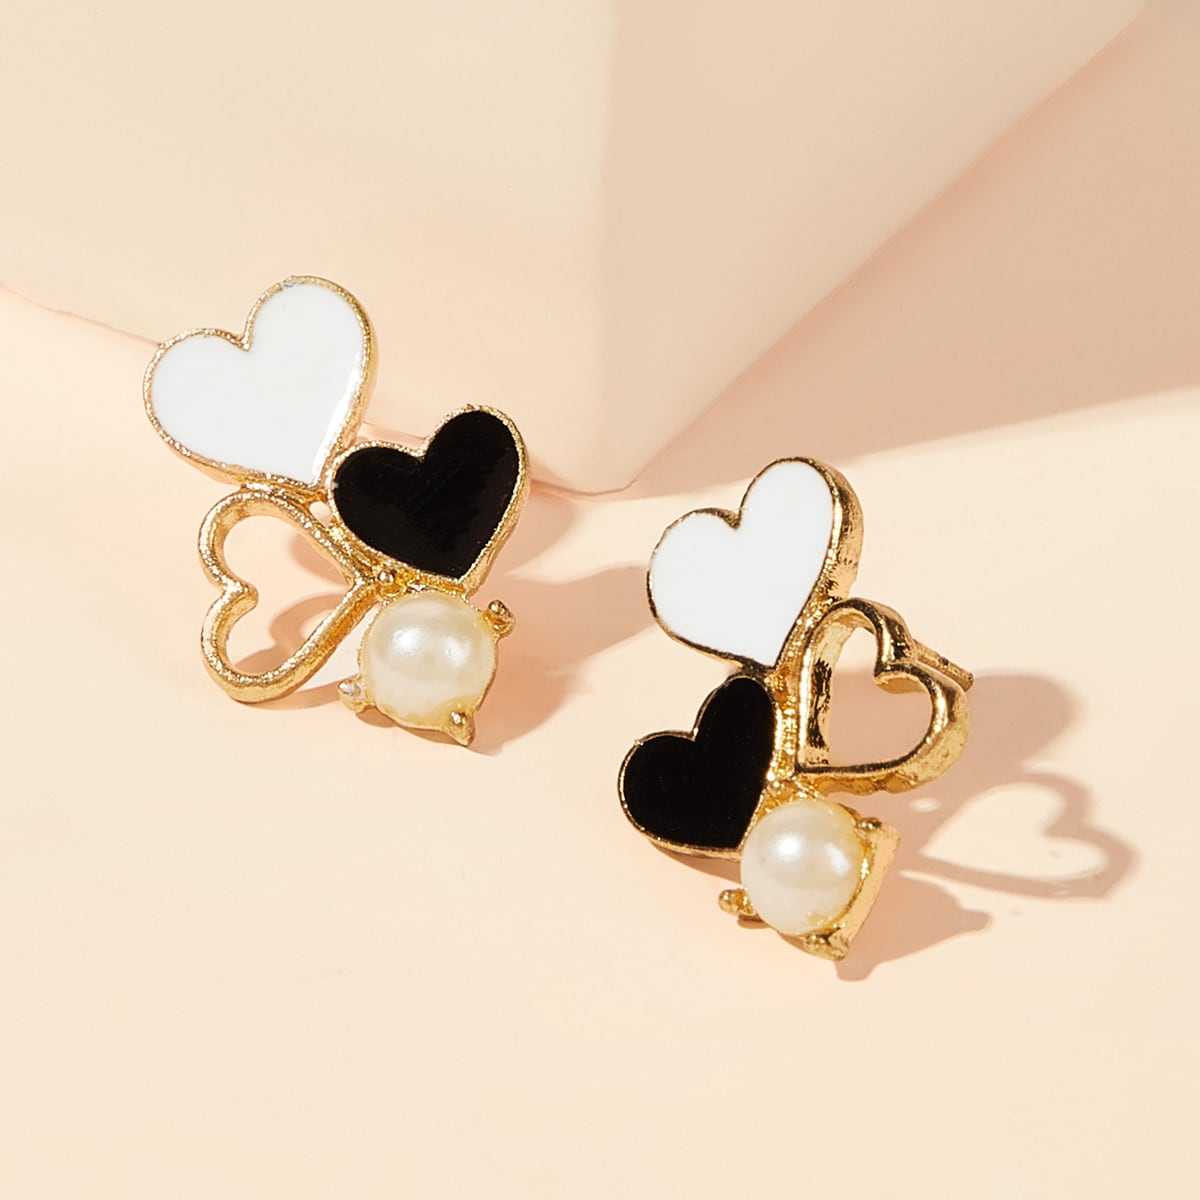 Two Tone Heart Shaped Stud Earrings 1pair